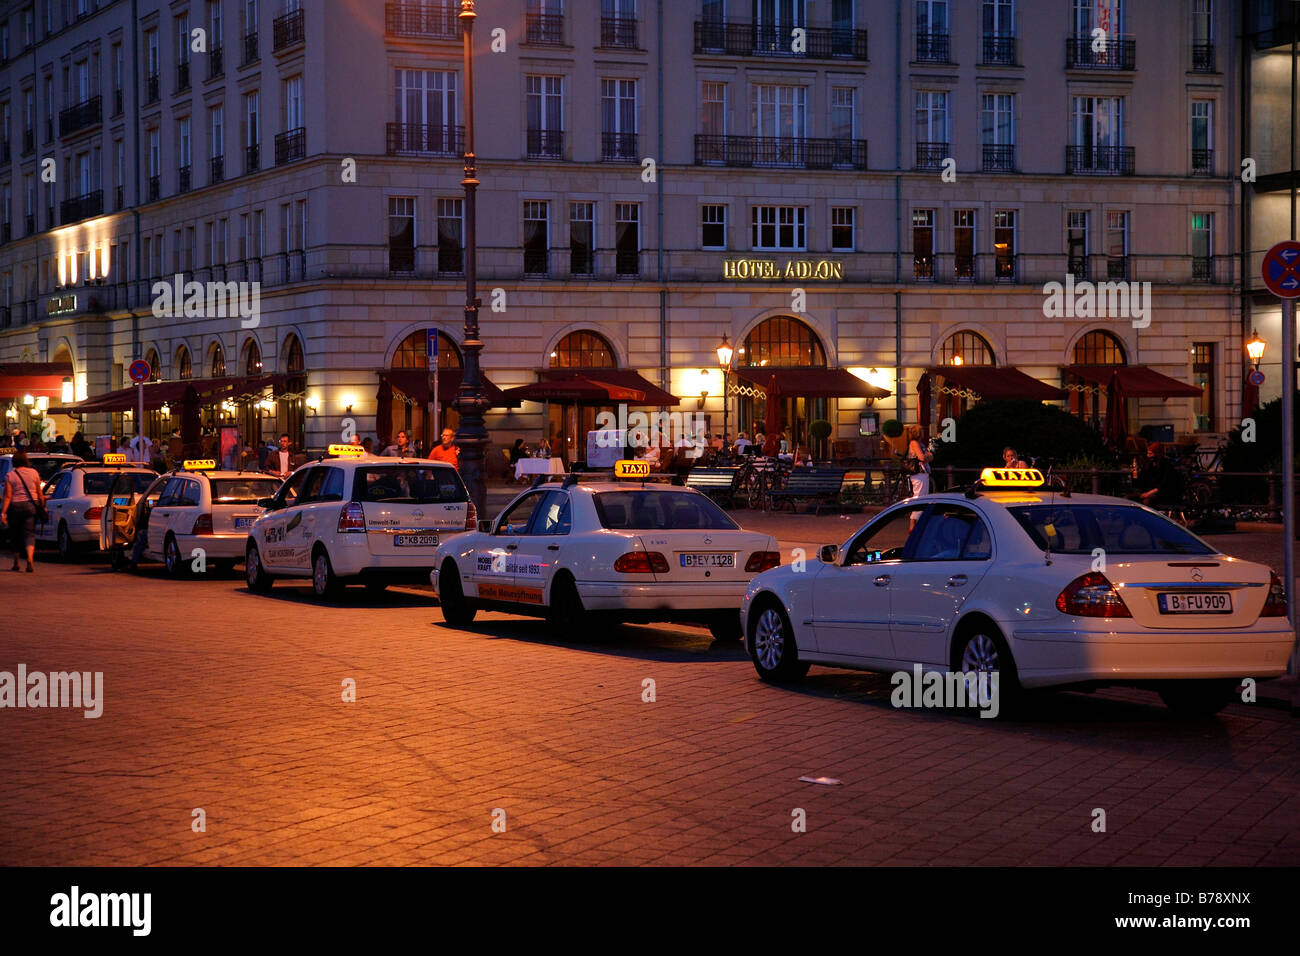 Taxi rank at the Adlon Hotel, Unter den Linden, night photograph, Bezirk Mitte or Central Region, Berlin, Germany, - Stock Image